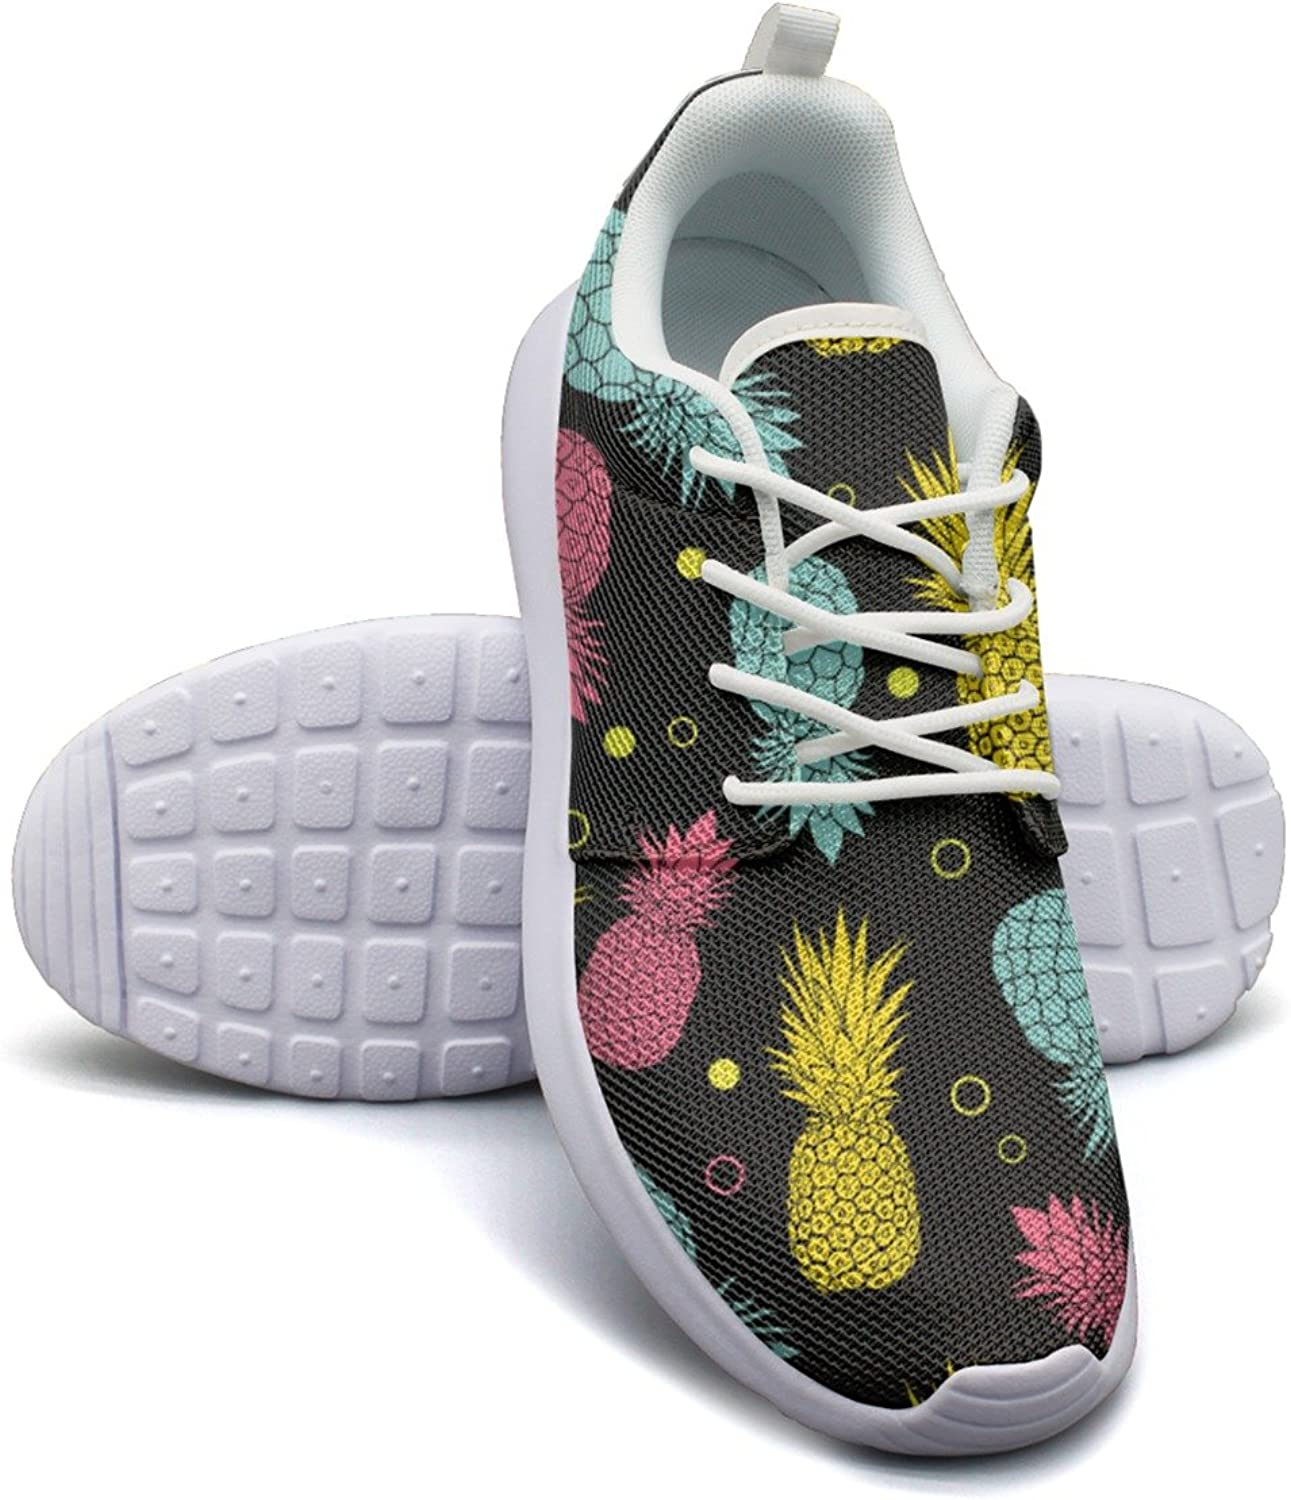 Black Summer colorful Tropical Fruit Pineapple Women's Lightweight Mesh Sneakers shoes Retro Athletic shoes